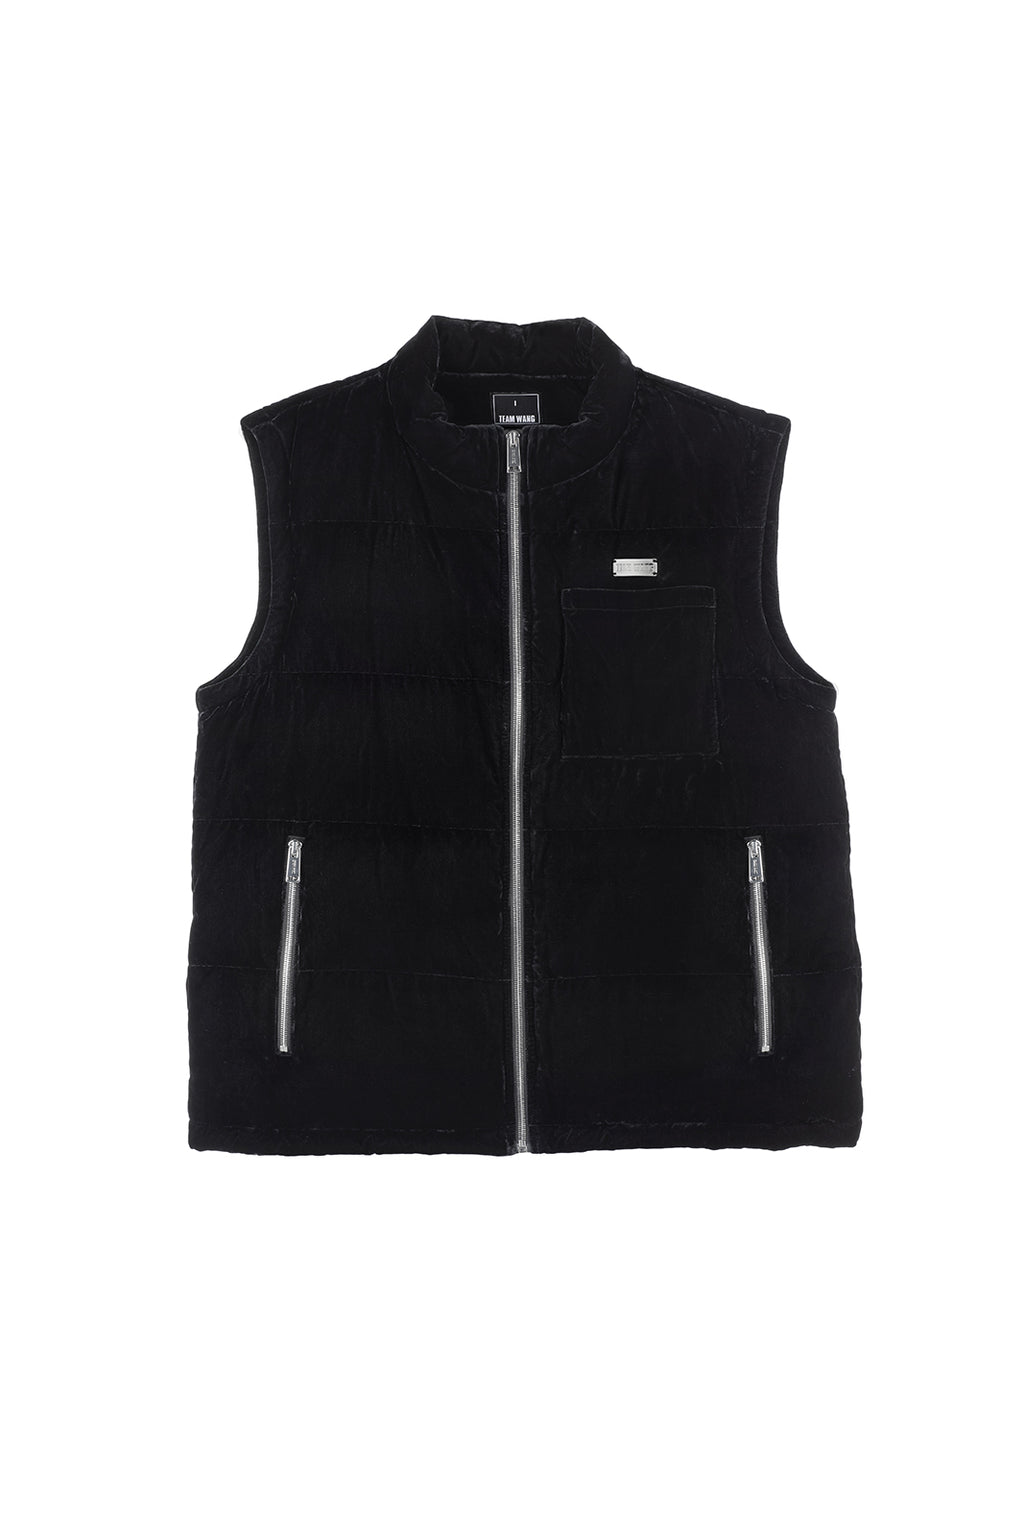 TEAM WANG PRINTED LOGO VELVET DOWN VEST